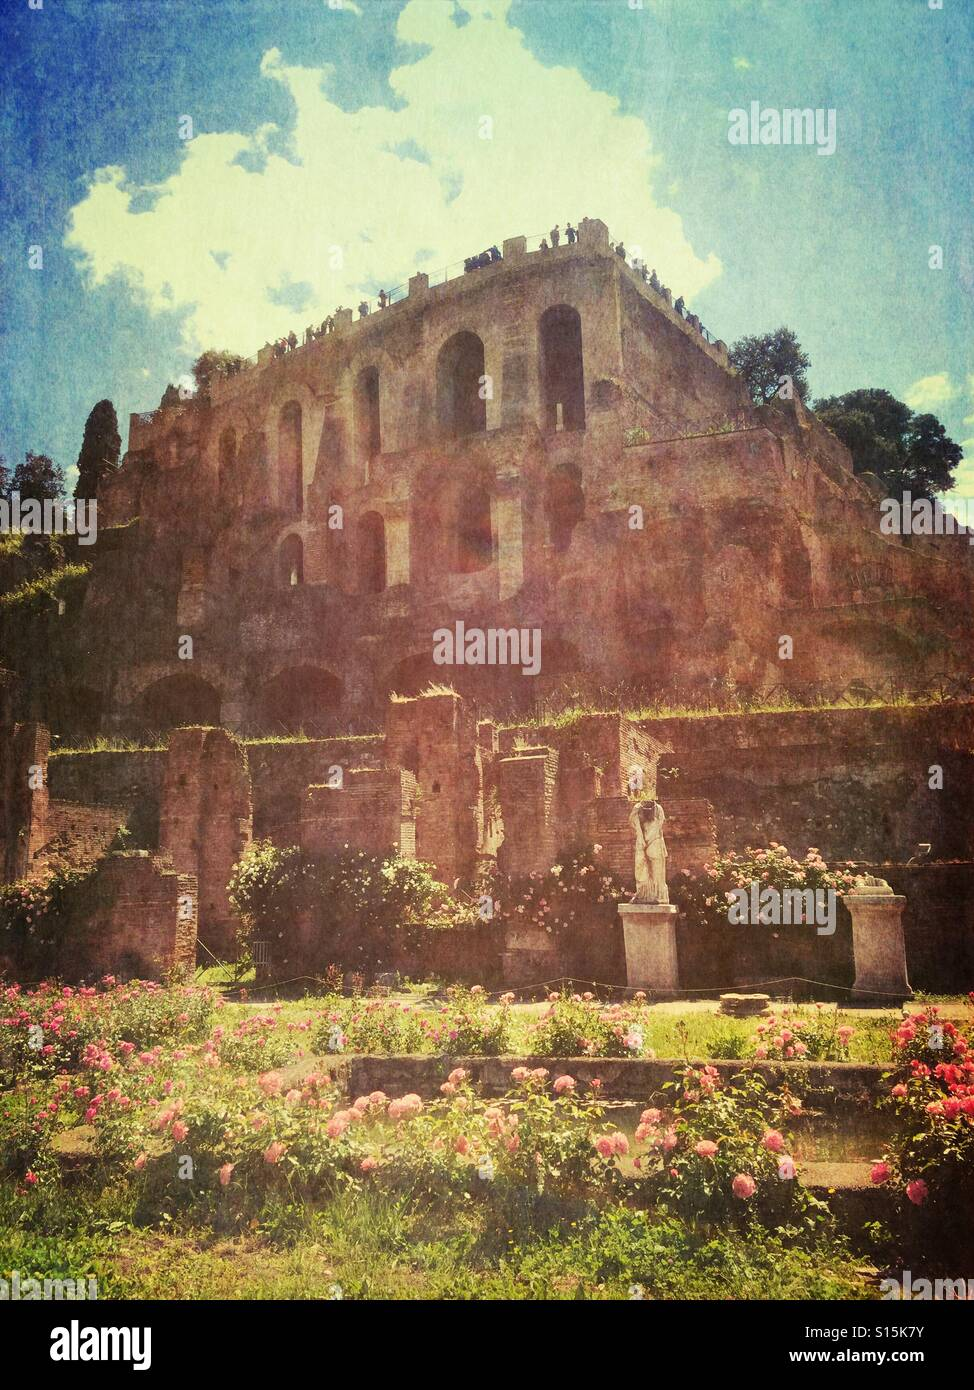 View of ancient Roman ruins and rose garden within the Foro Romano World Heritage Site in Rome, Italy. Vintage paper Stock Photo